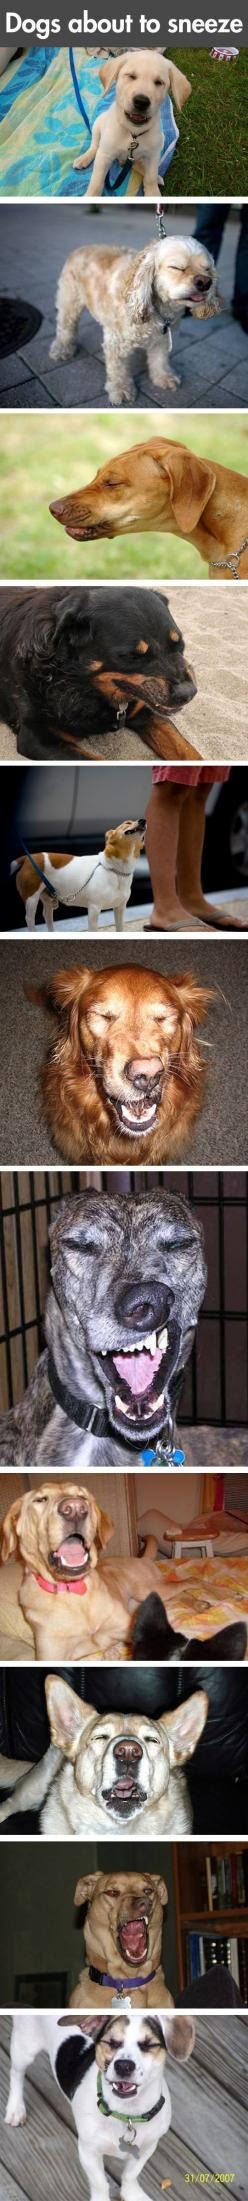 dogs about to sneeze.. This made me laugh harder than it should have...: Doggie, Funny Animals, Dogs Dogs, Laughing So Hard, Funny Dogs, Dogs Sneezing, Puppy, So Funny